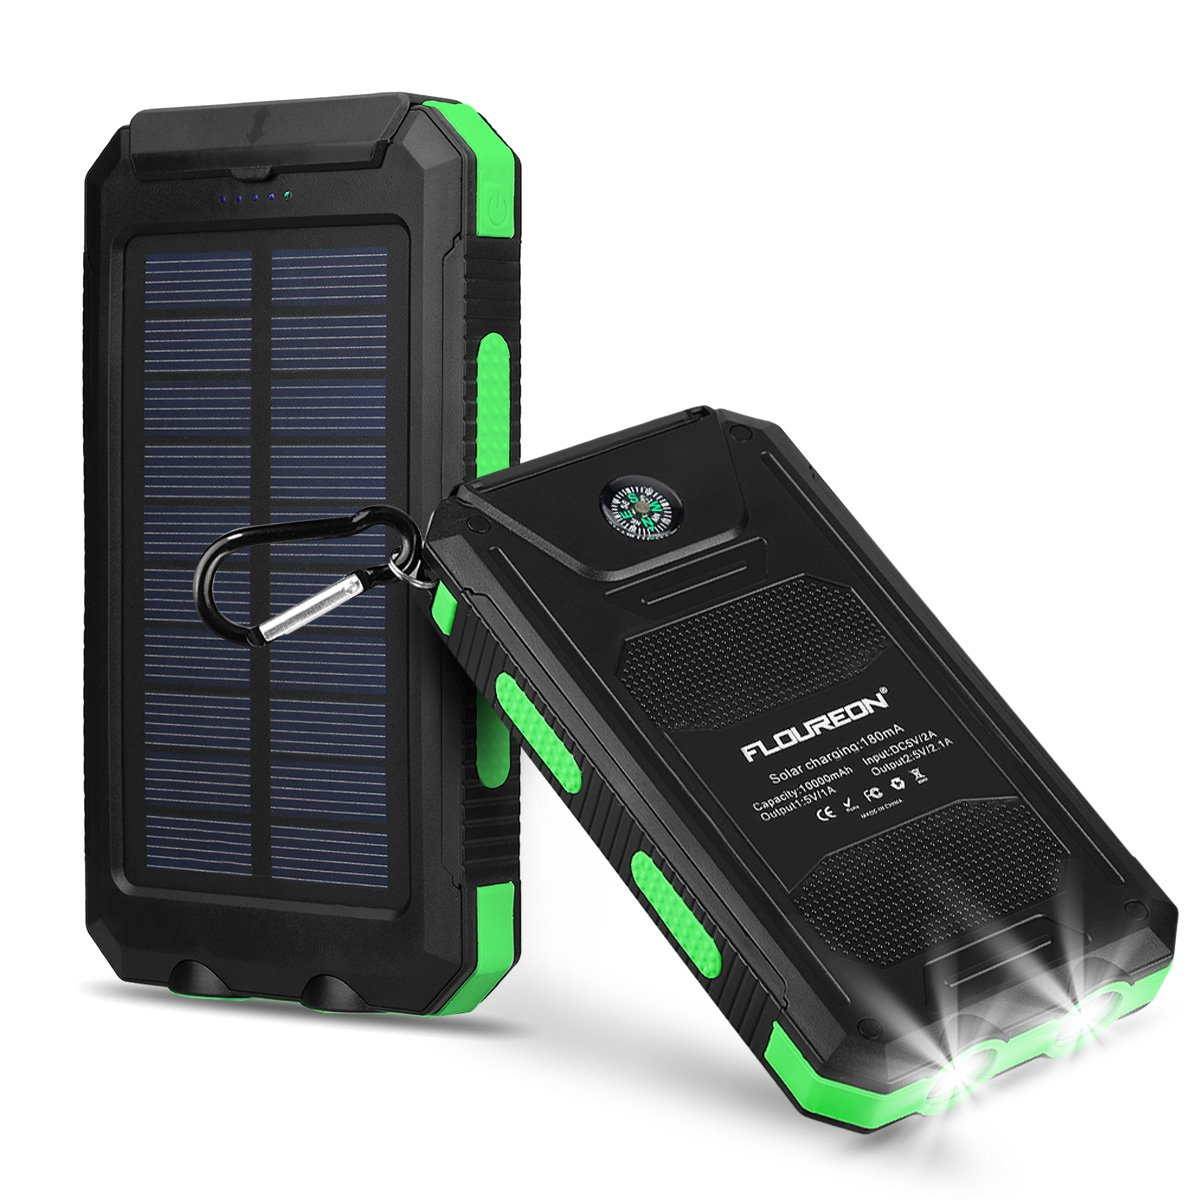 FLOUREON 10,000mAh Power Bank with Solar Charging Auxiliary Function,Portable Mobile Phone Charger Dual 2.1A USB Output External Battery Charger for iPhone, iPad, Samsung Galaxy etc.